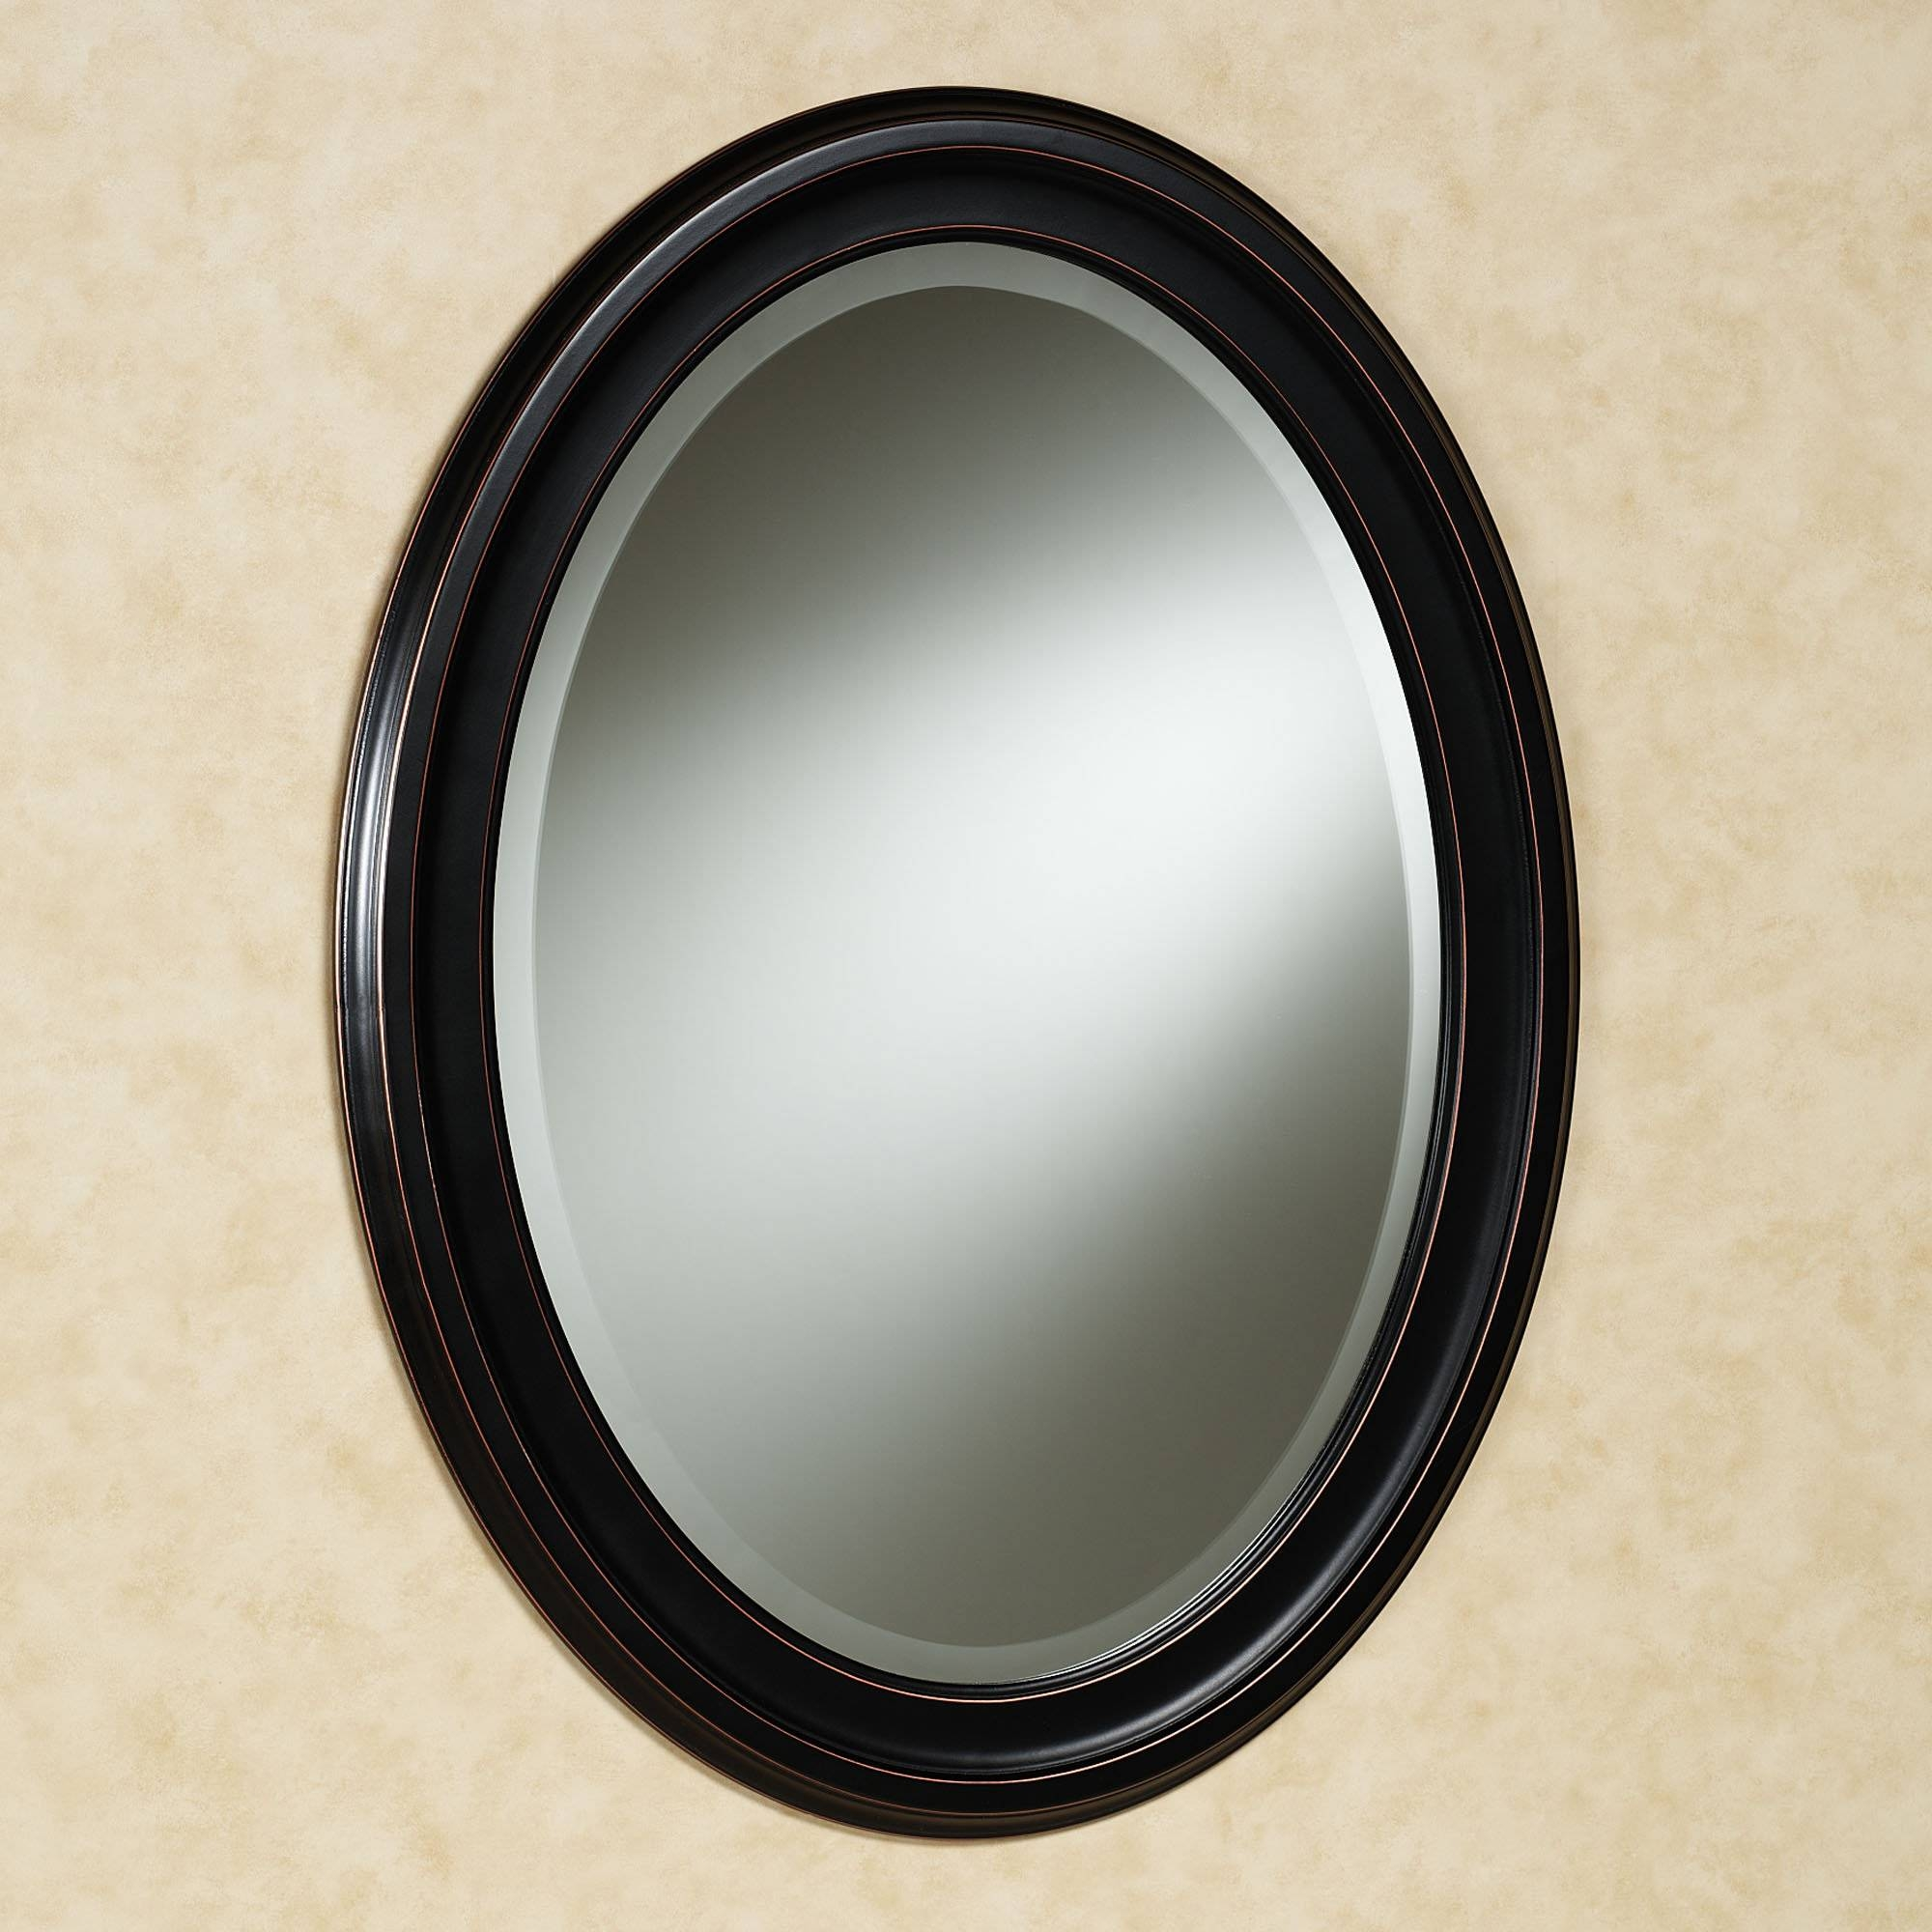 Oval Wall Mirrors, Black Oval Wall Clock Black Oval Wall Mirror Pertaining To Black Oval Mirrors (View 12 of 15)